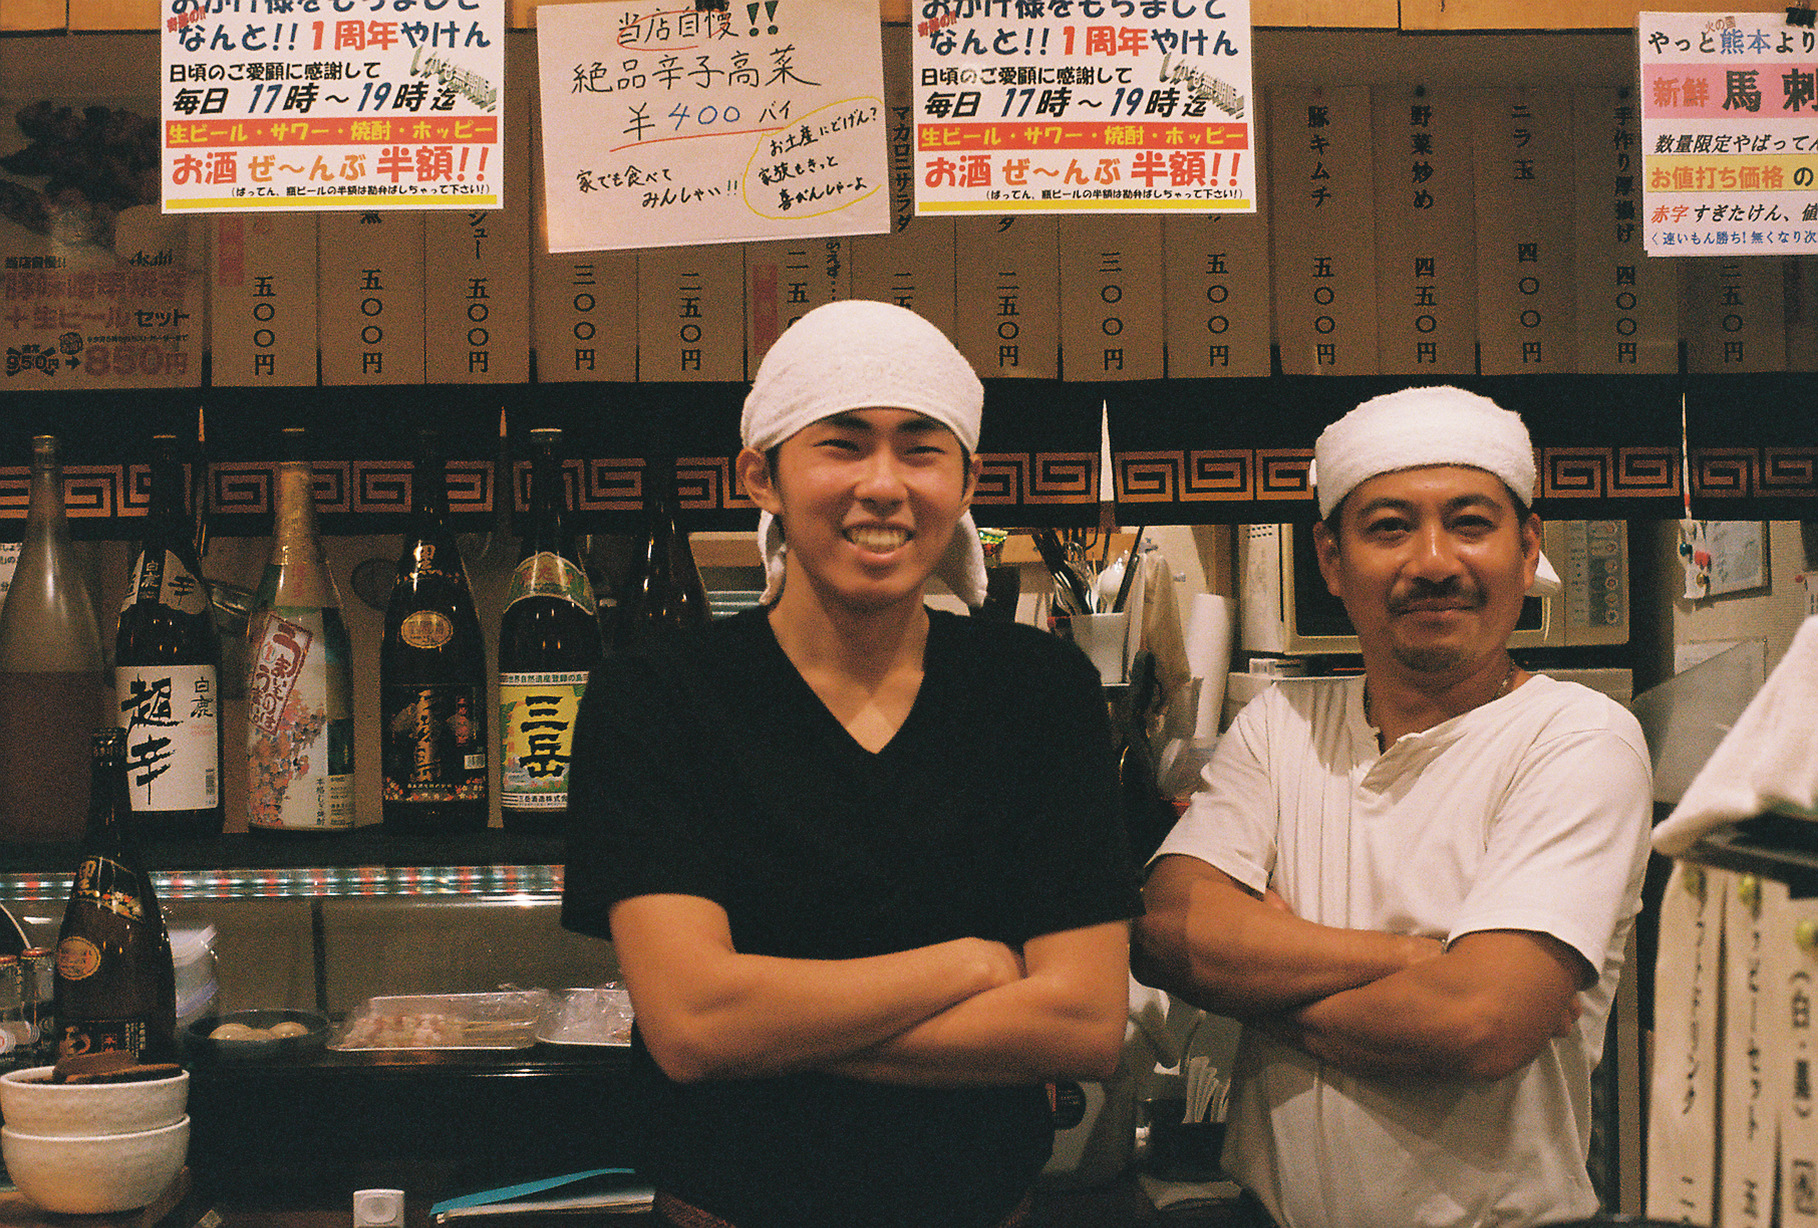 Shinjuku ramen shop owners